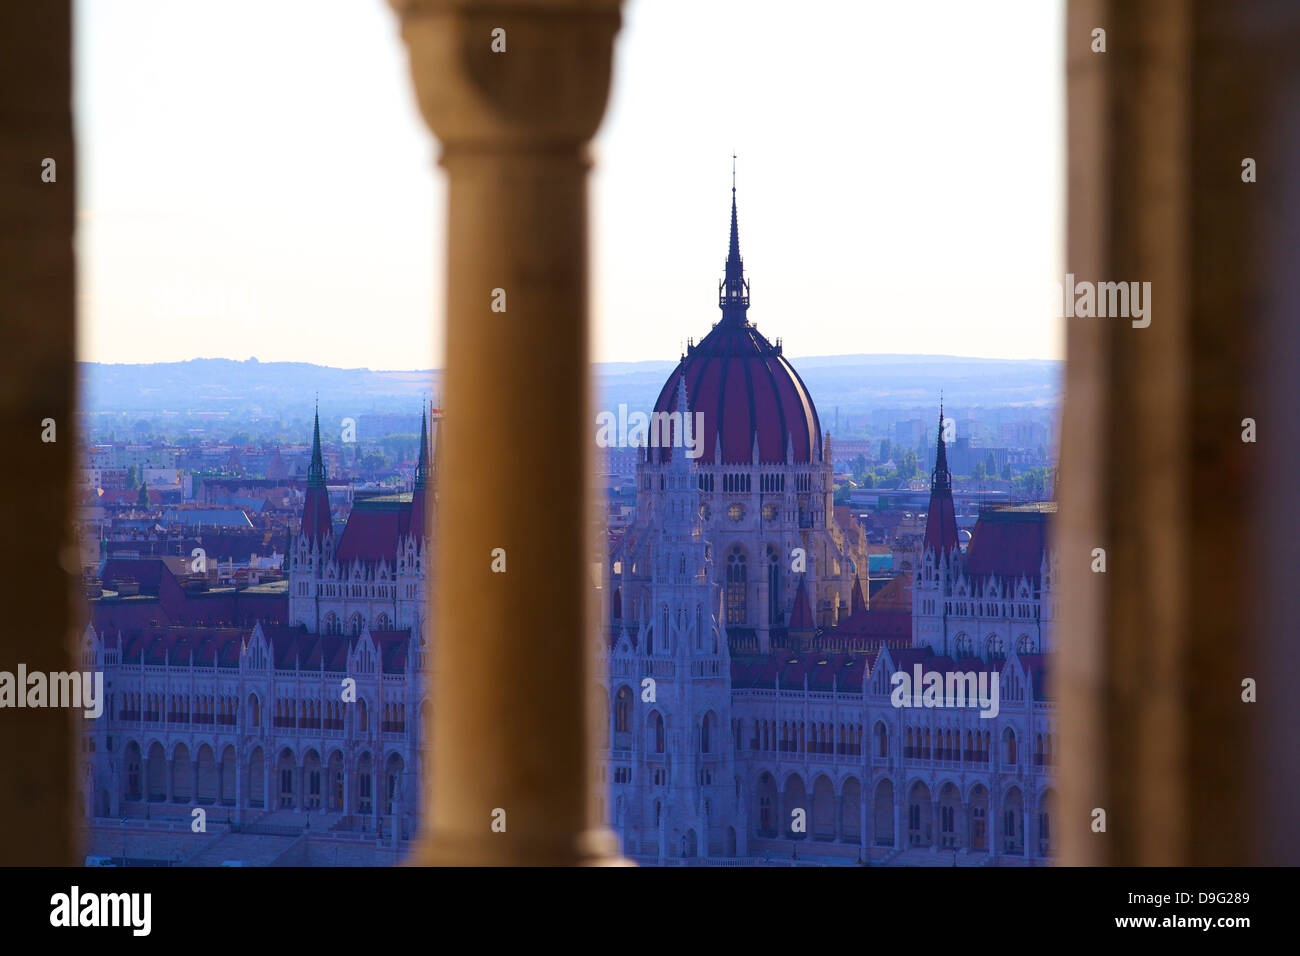 View of Hungarian Parliament Building from Fisherman's Bastion, Budapest, Hungary - Stock Image